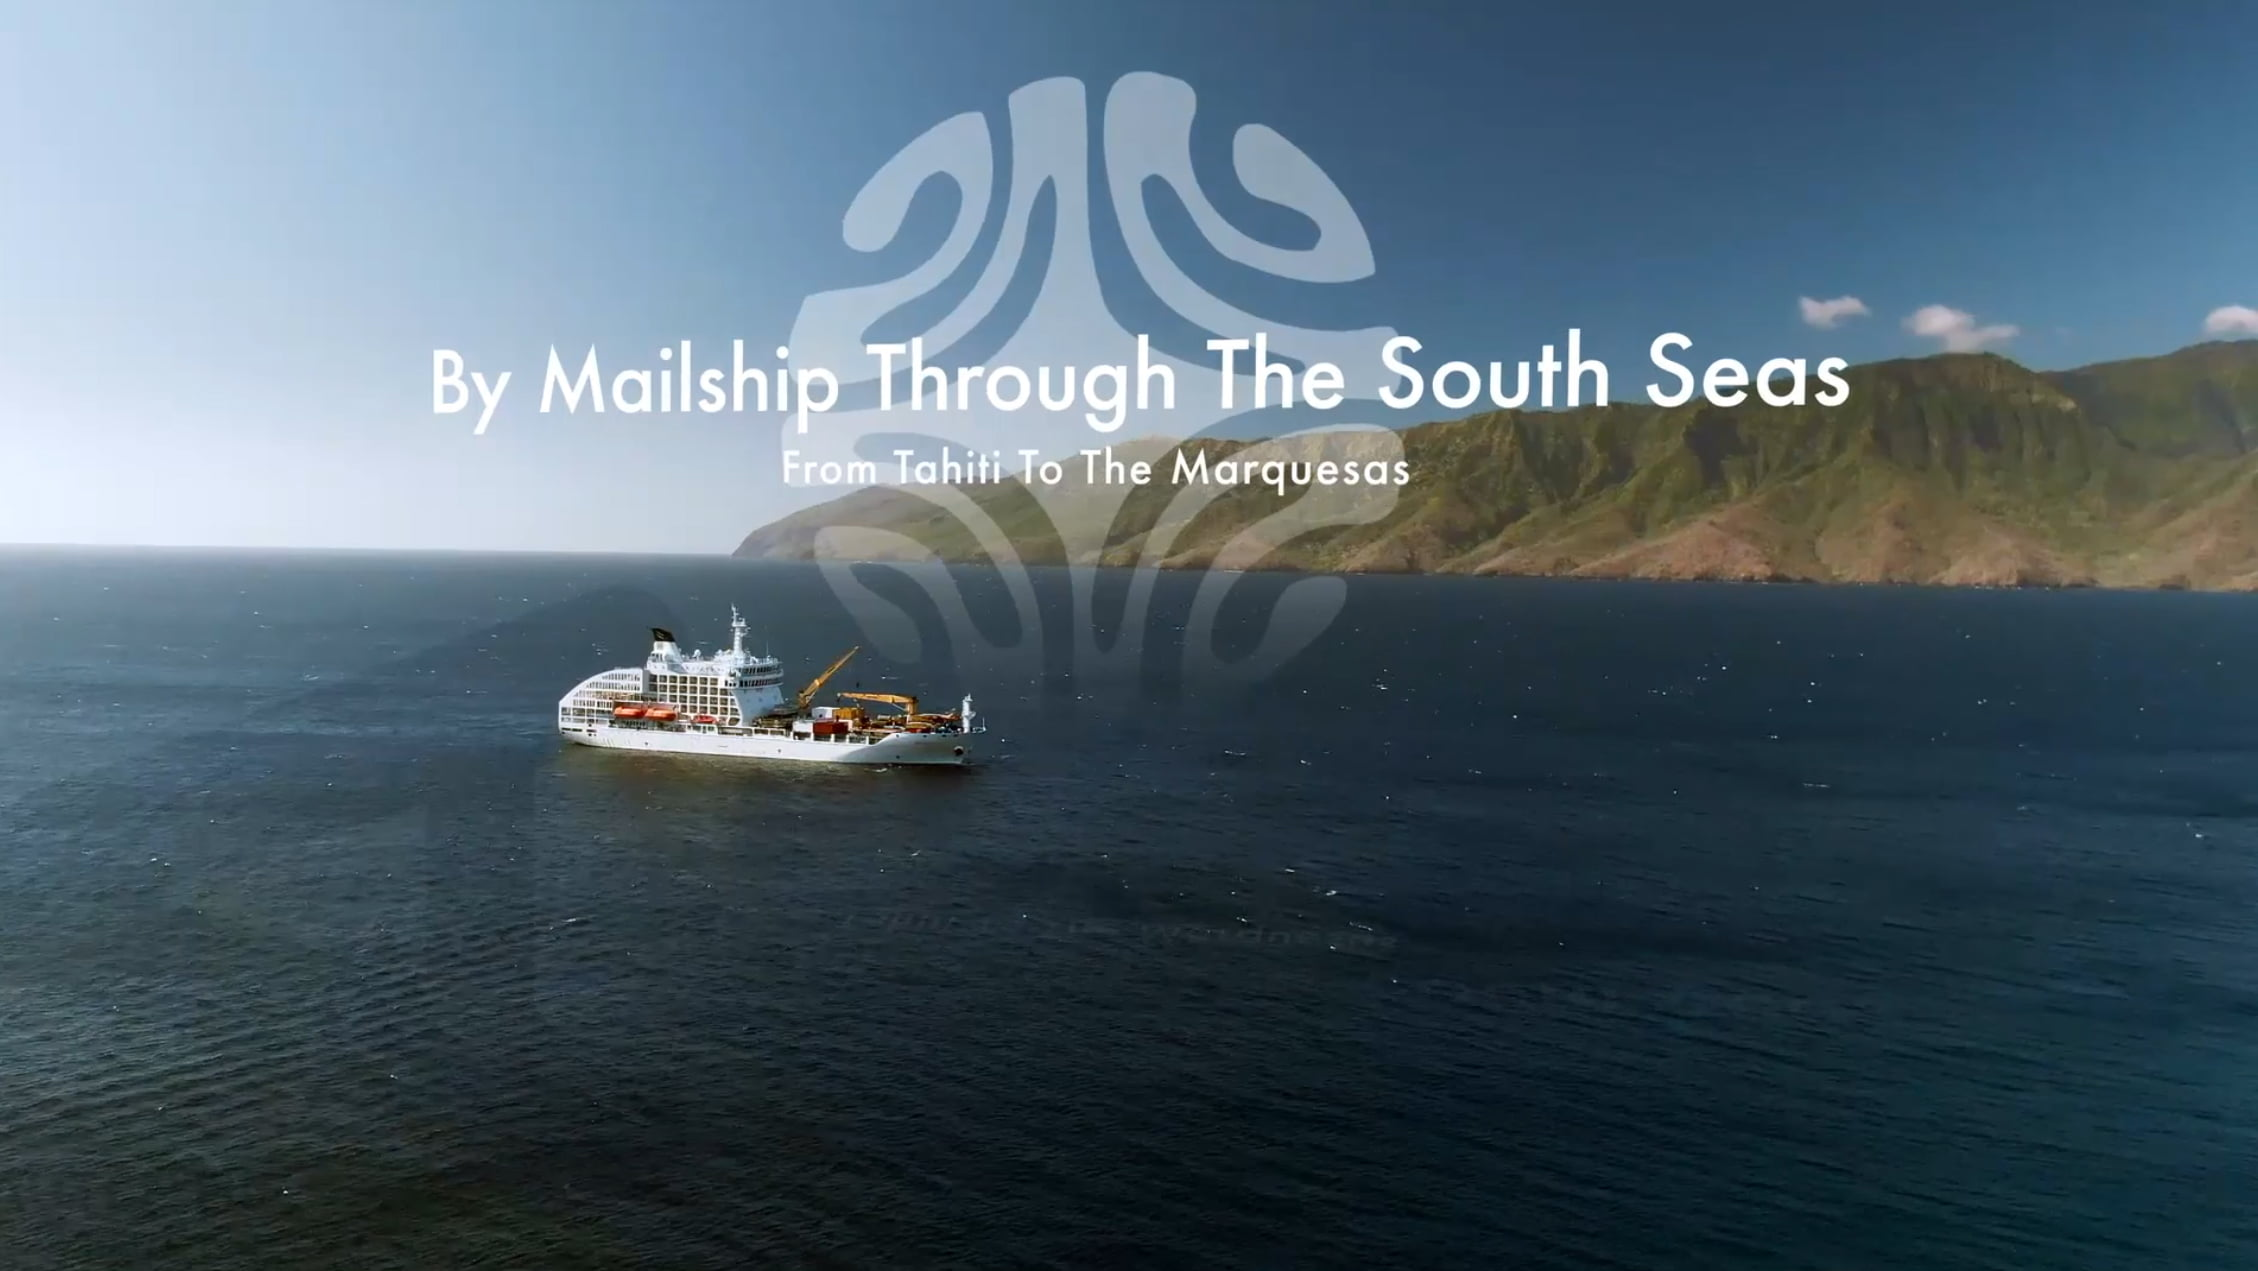 By Mail Ship Through the South Seas